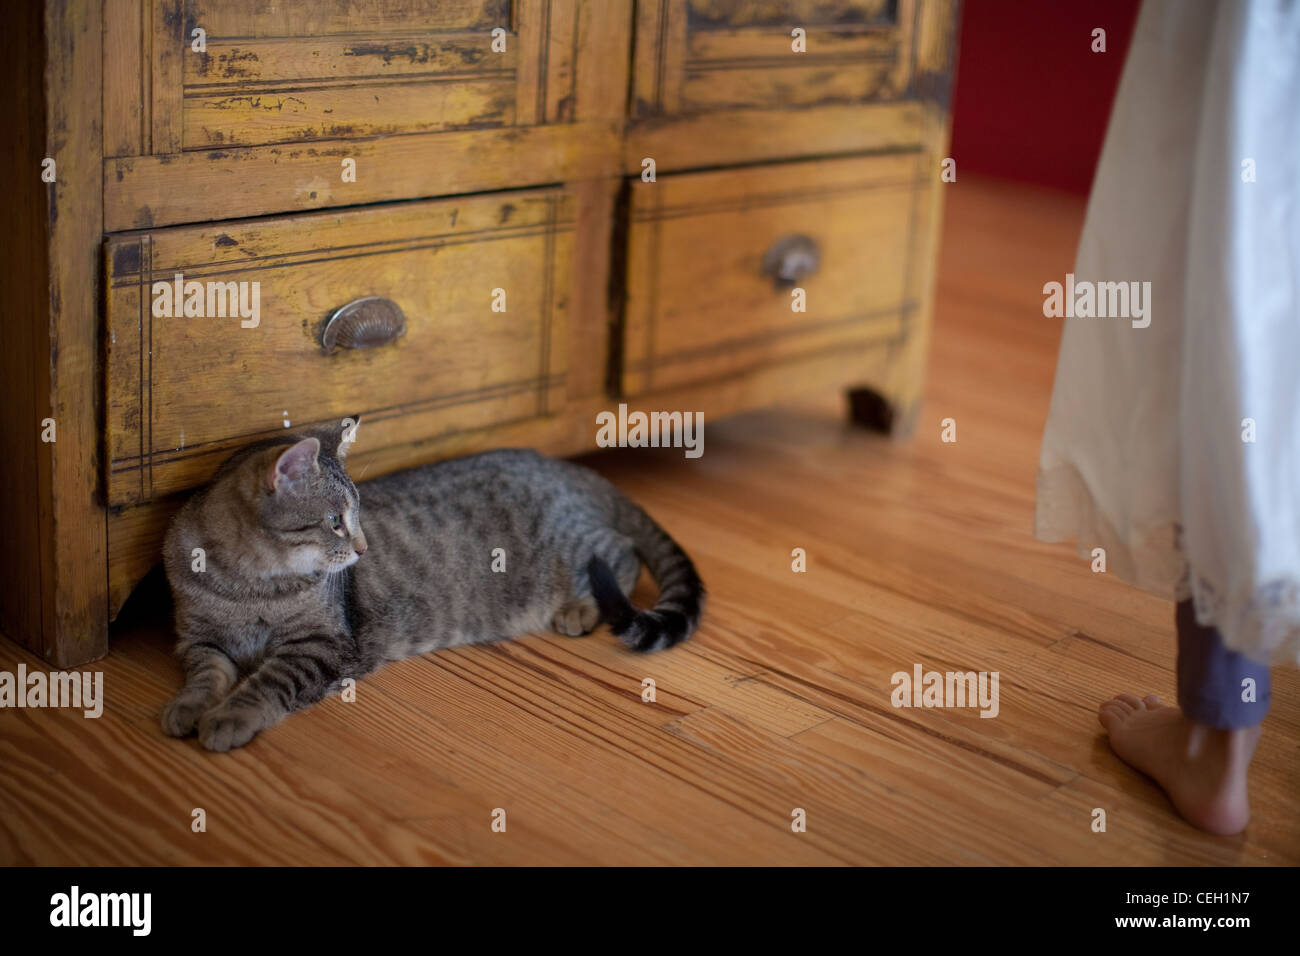 Cat resting indoors on a wood floor Stock Photo